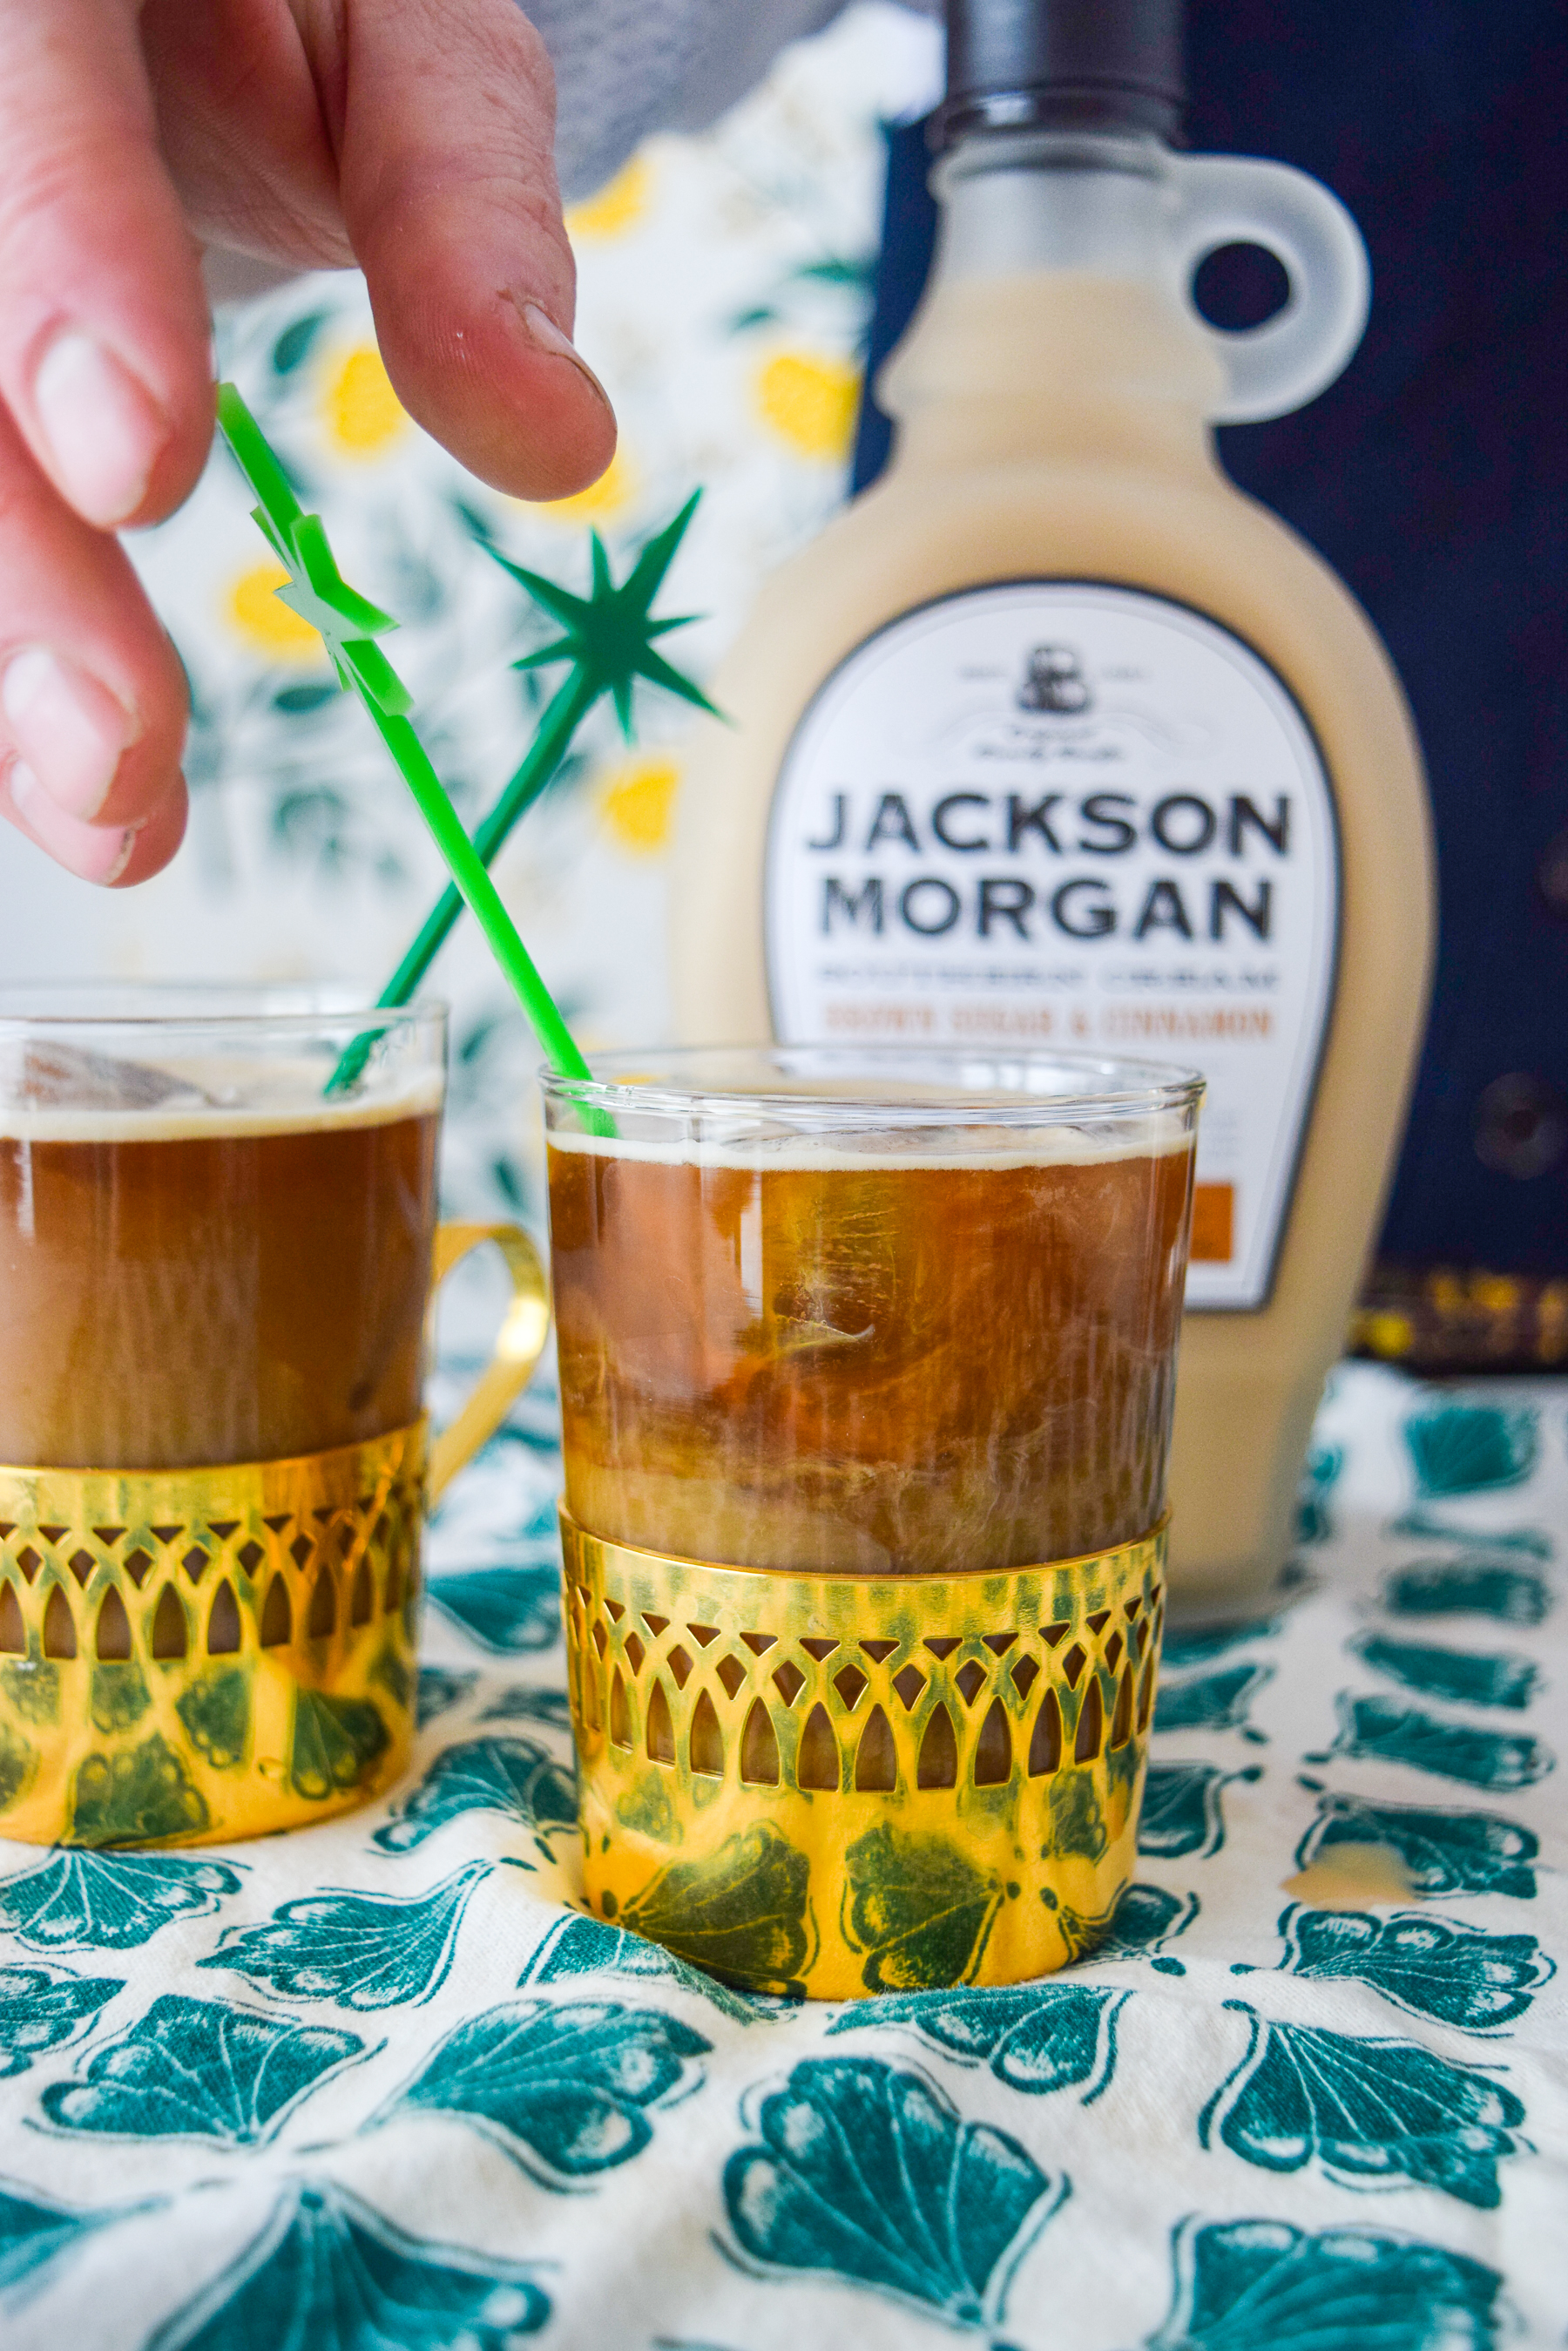 A Whiskey Cream Cold Brew Coffee Cocktail is a great way to start off your St. Patrick's day festivities, or just a fun afternoon cocktail. Don't forget a good book, or the Jackson Morgan Whiskey Cream.